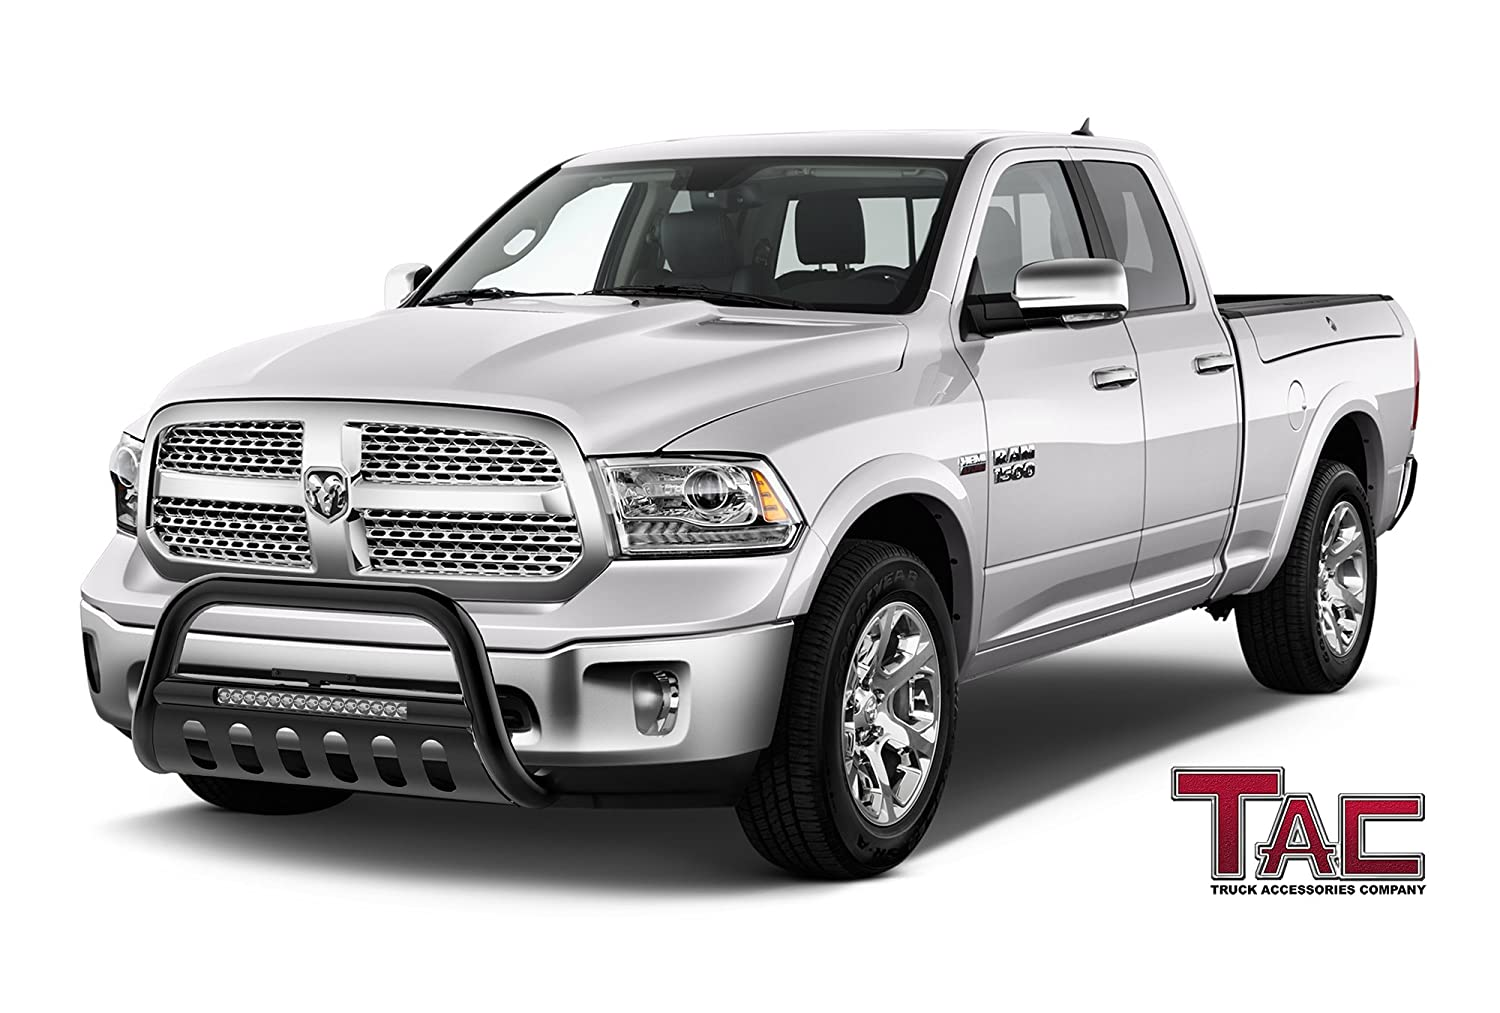 Tac Led Lighting Bull Bar For 2009 2018 Dodge Ram 1500 1980 F150 Ford Truck Brush Guards Excl Rebel Modelwill Interfere W Sensors If Equipped Pickup 3 Inches Black